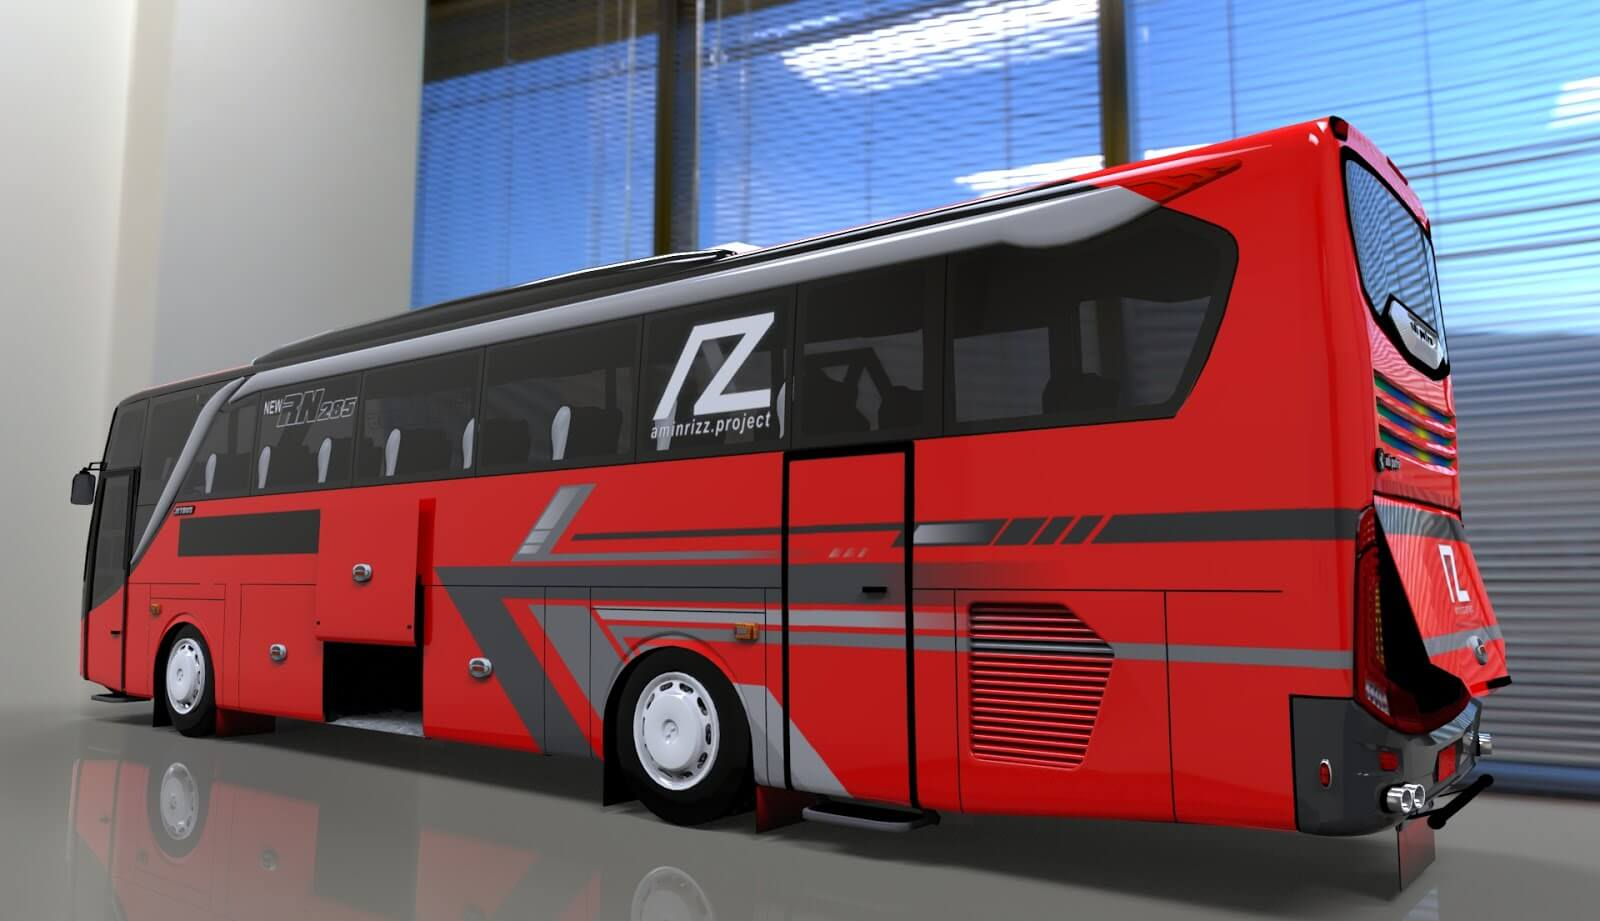 Download Update New Setra JB2+ Bus Mod for Bus Simulator Indonesia, Update New Setra JB2+, Bus Simulator Indonesia Mod, Mod BUSSID, Mod for BUSSID, New Bus Mod, New Setra JetBus 2+, New Setra JetBus 2+ Mod for BUSSID, SGCArena, Update New Setra JB2+, Vehicle Mod, ZTOM